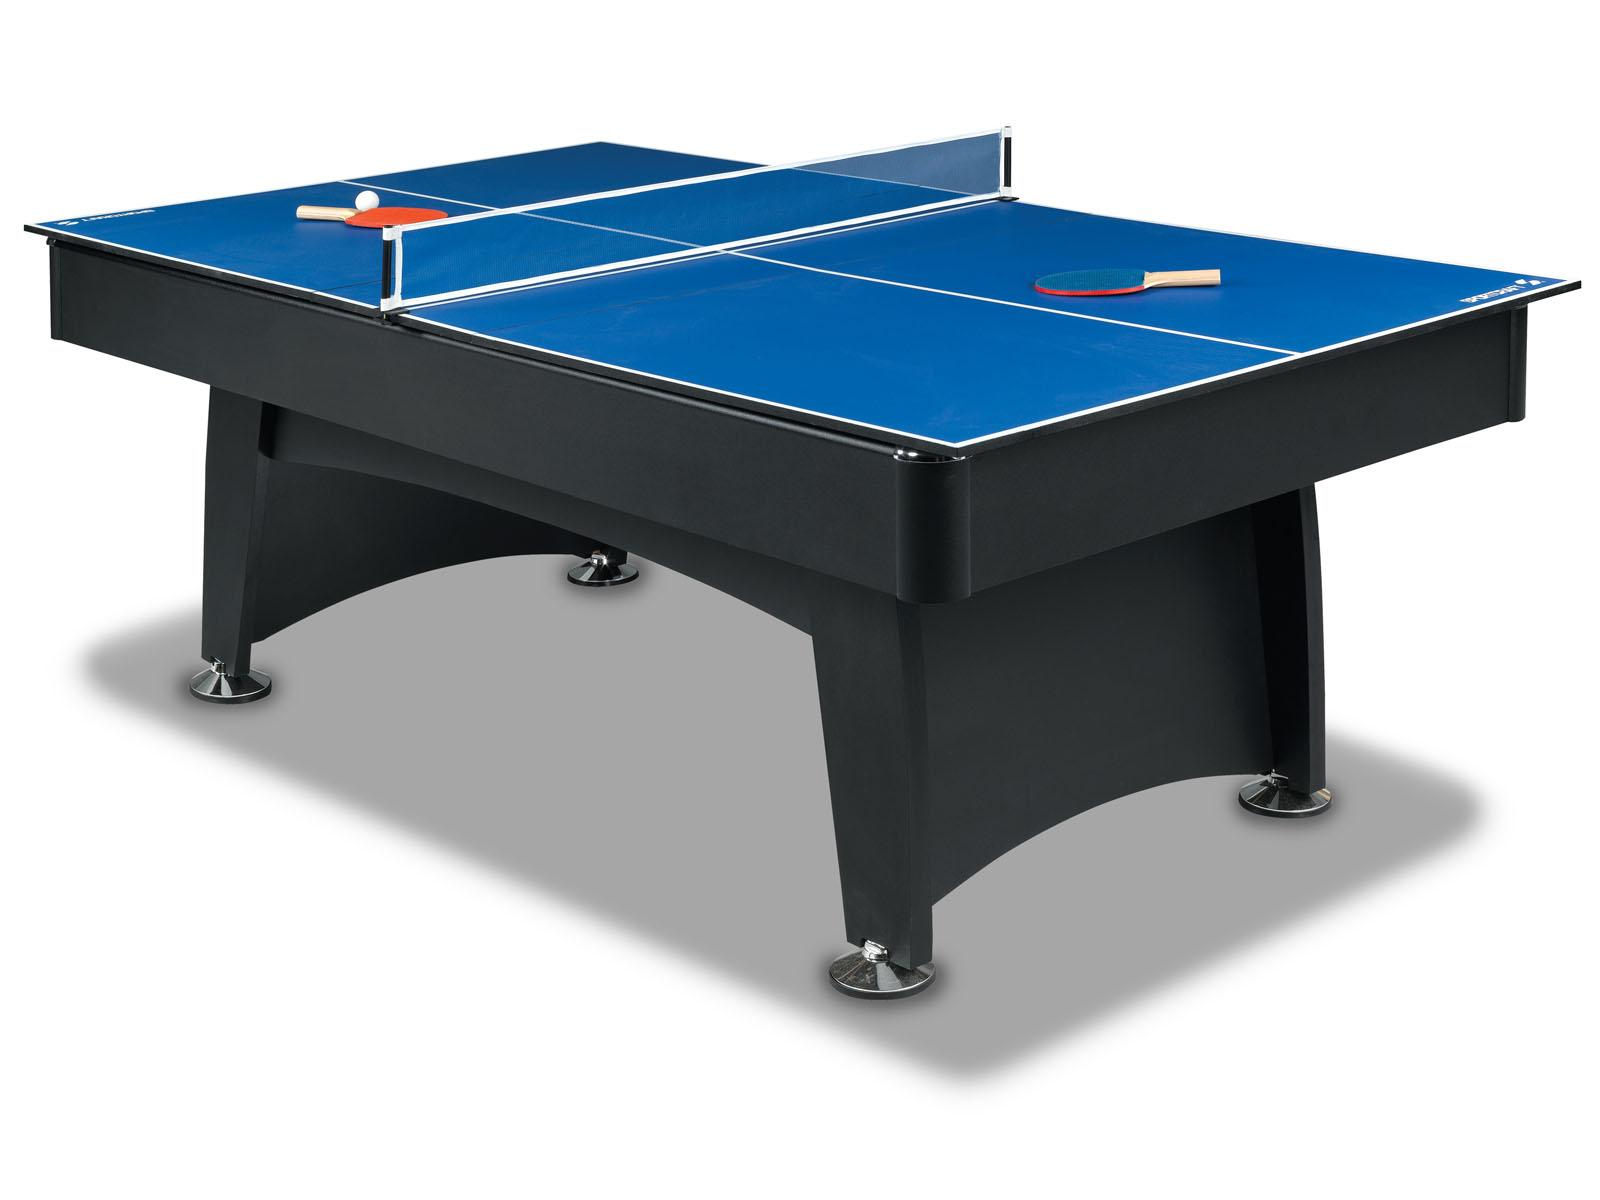 Shop Fullerton Billiard Table With Table Tennis Top Free - Sportcraft 7ft pool table review